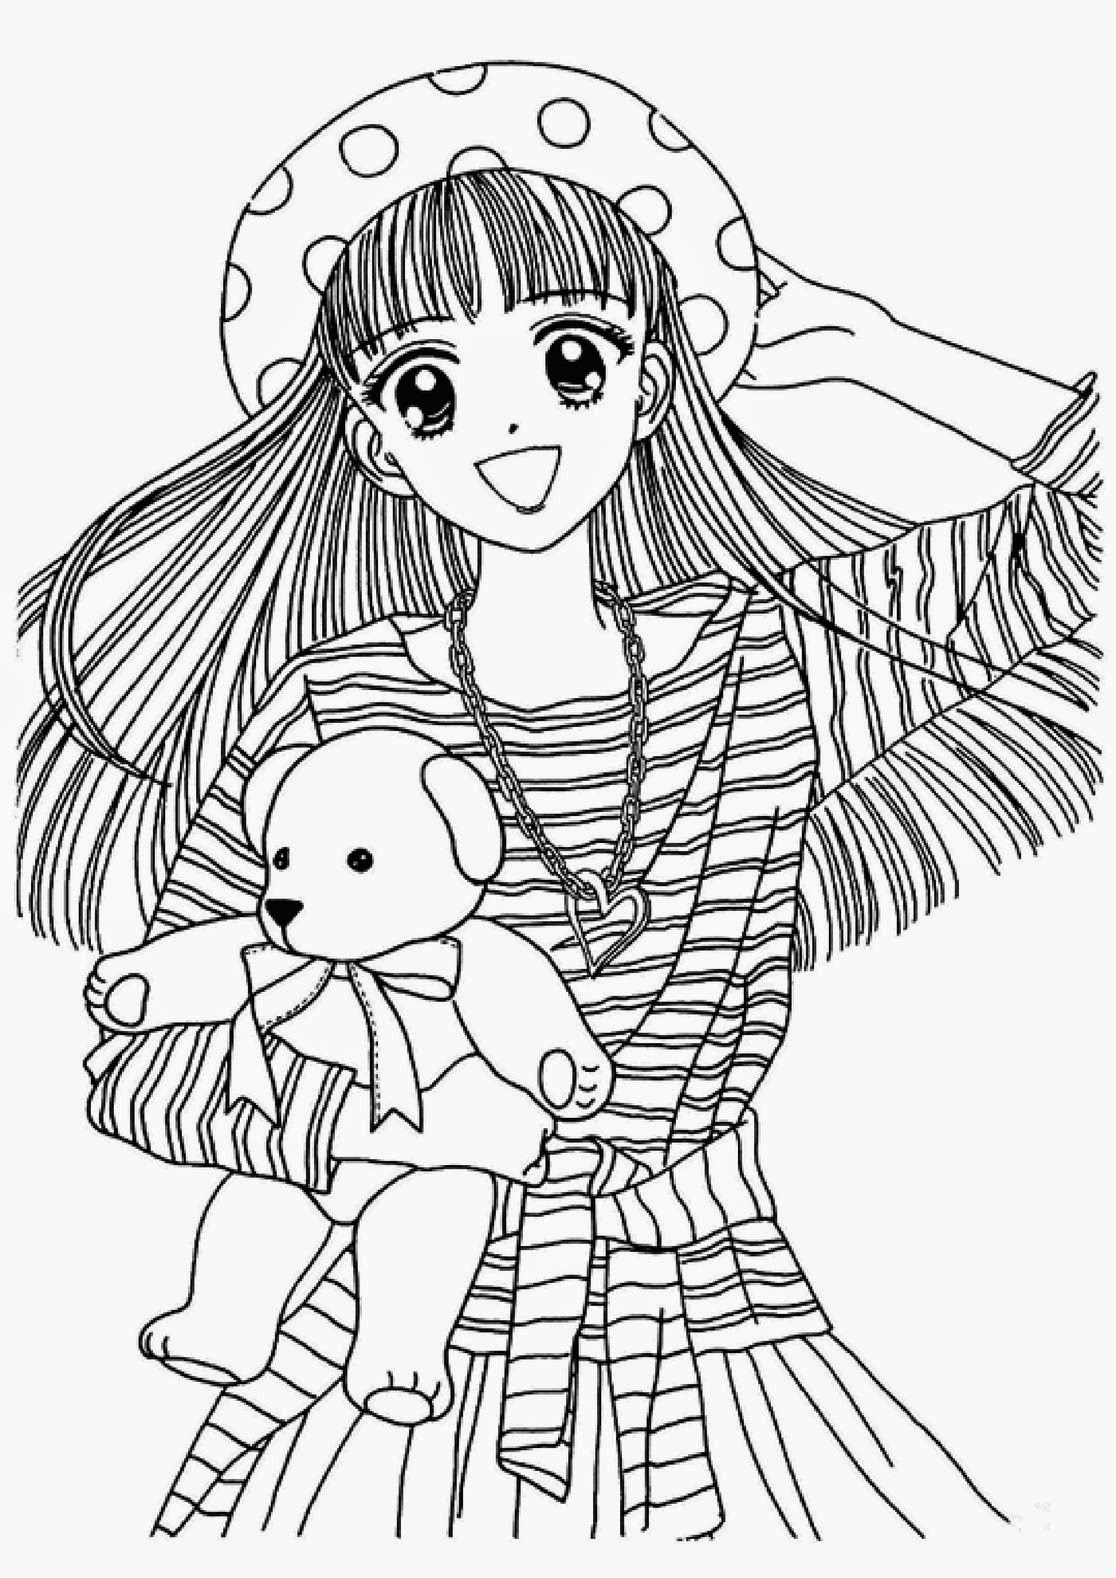 anime girl coloring page anime girl coloring pages coloring pages to download and page anime girl coloring